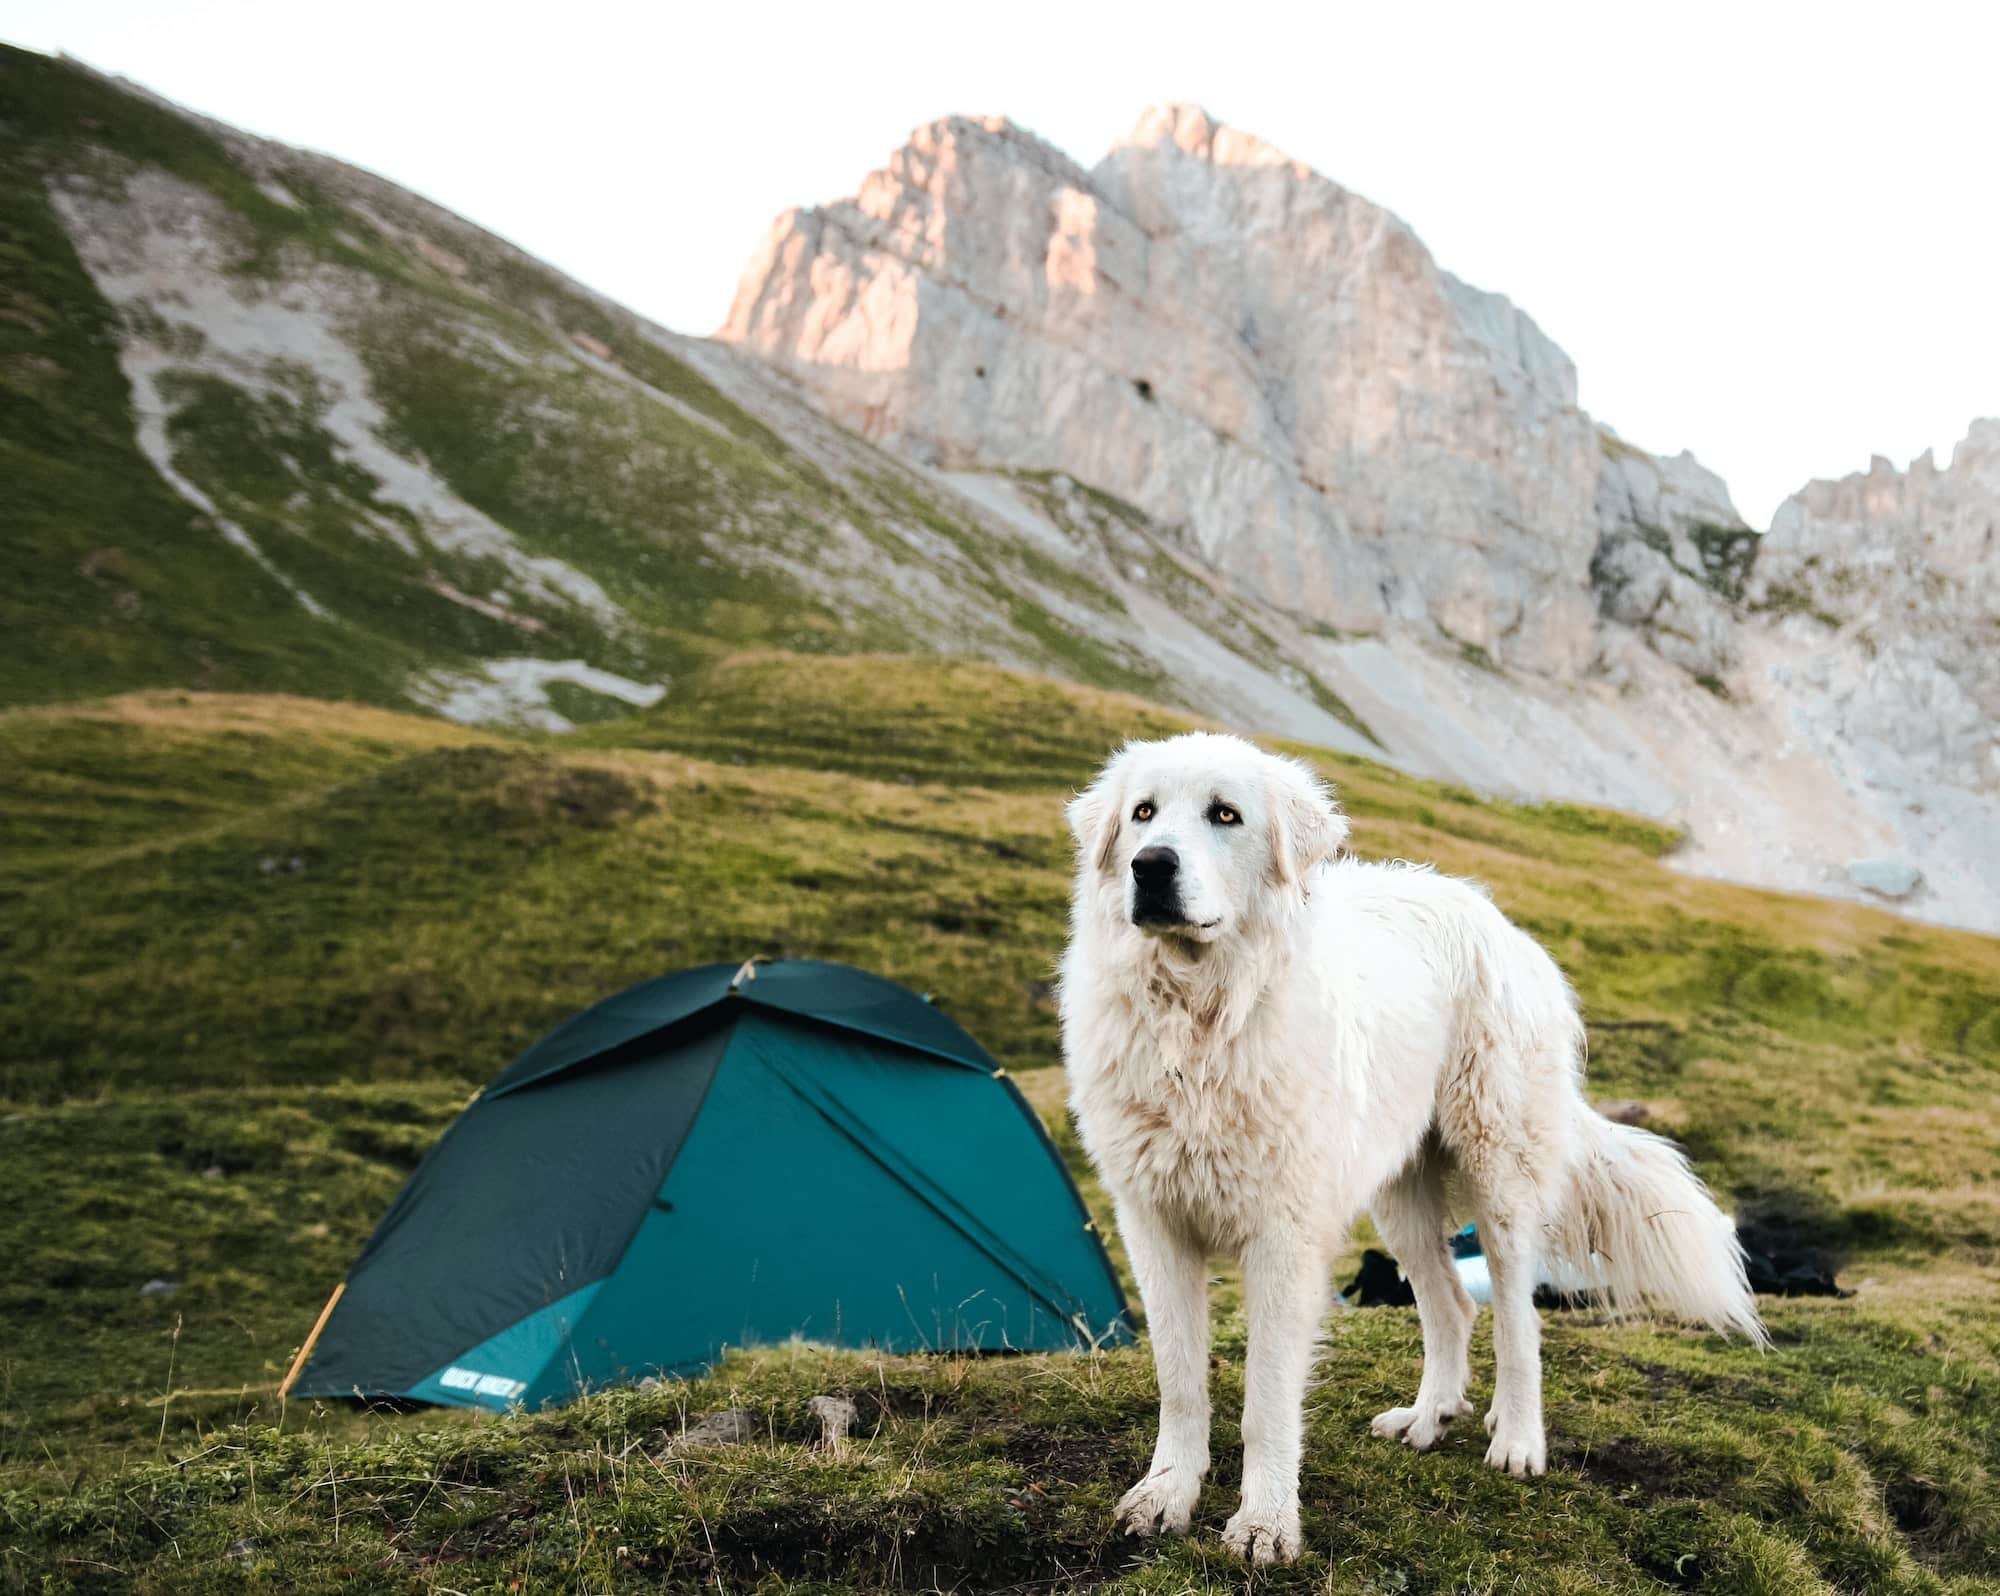 A dog near his owner's tent on a camping trip